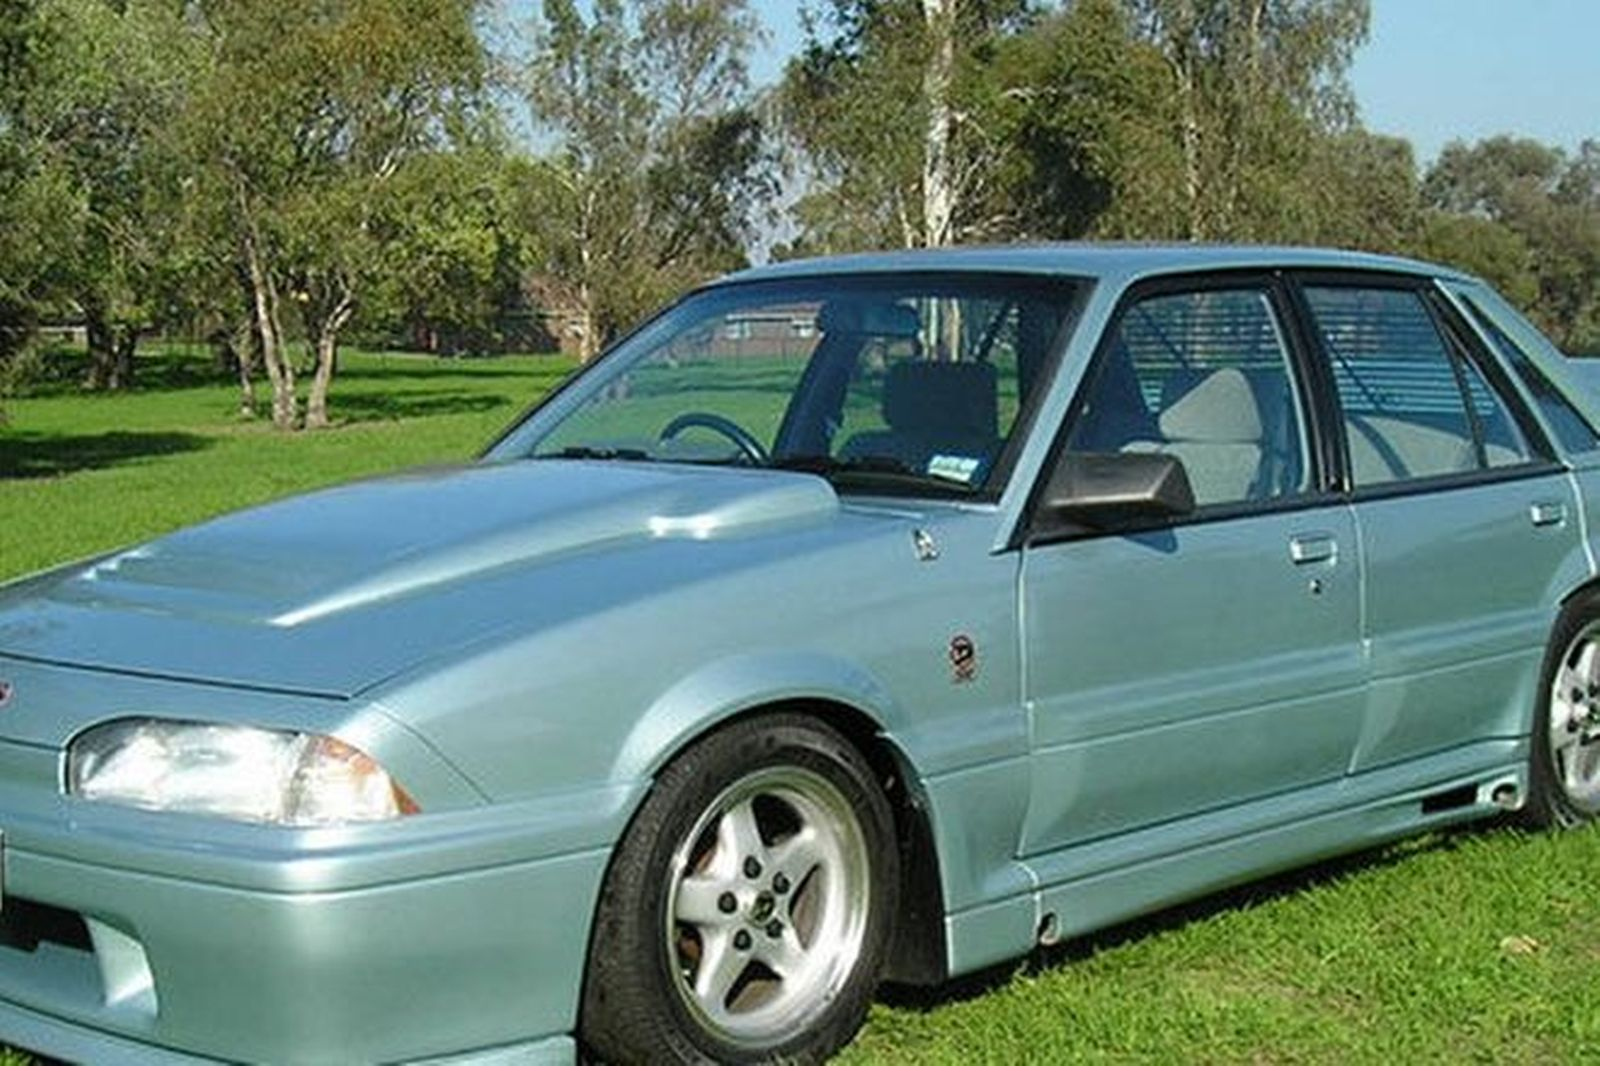 Sell Car Online >> Sold: Holden VL Walkinshaw Group A SS Sedan Auctions - Lot 24 - Shannons